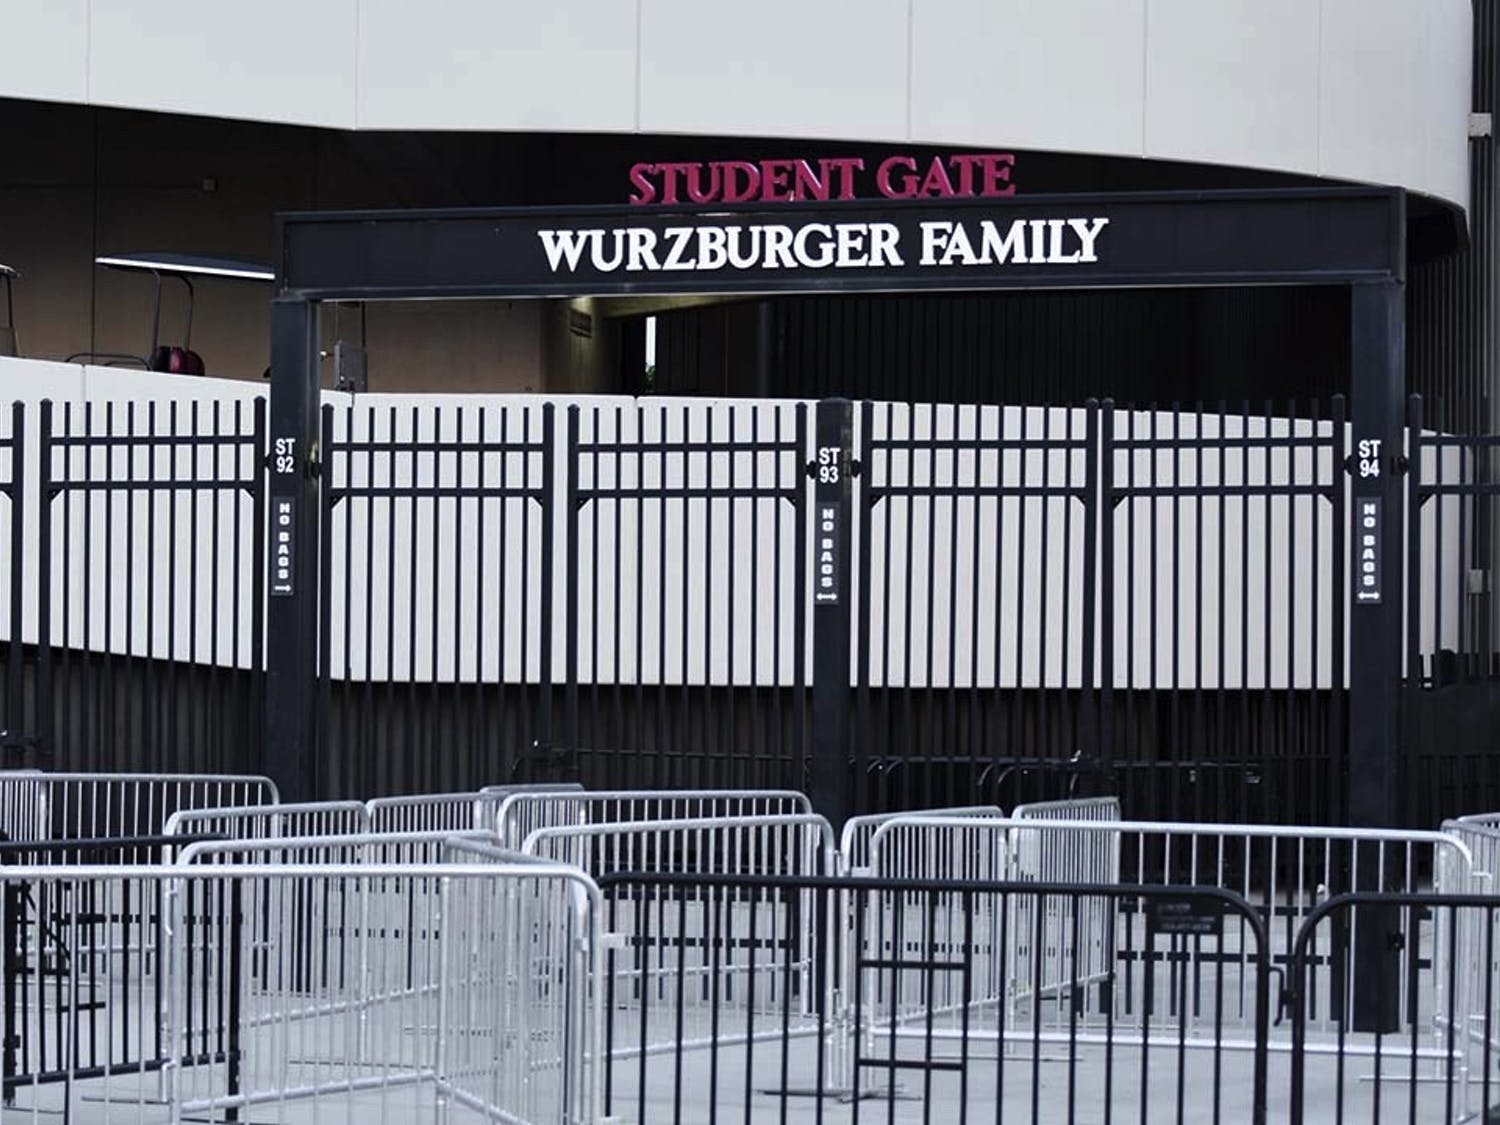 The student gate entrance at Williams-Brice Stadium. The lack of adequate staff, organization and infrastructure at the gate before the game led to the formation of a large crowd, which resulted in students getting injured.